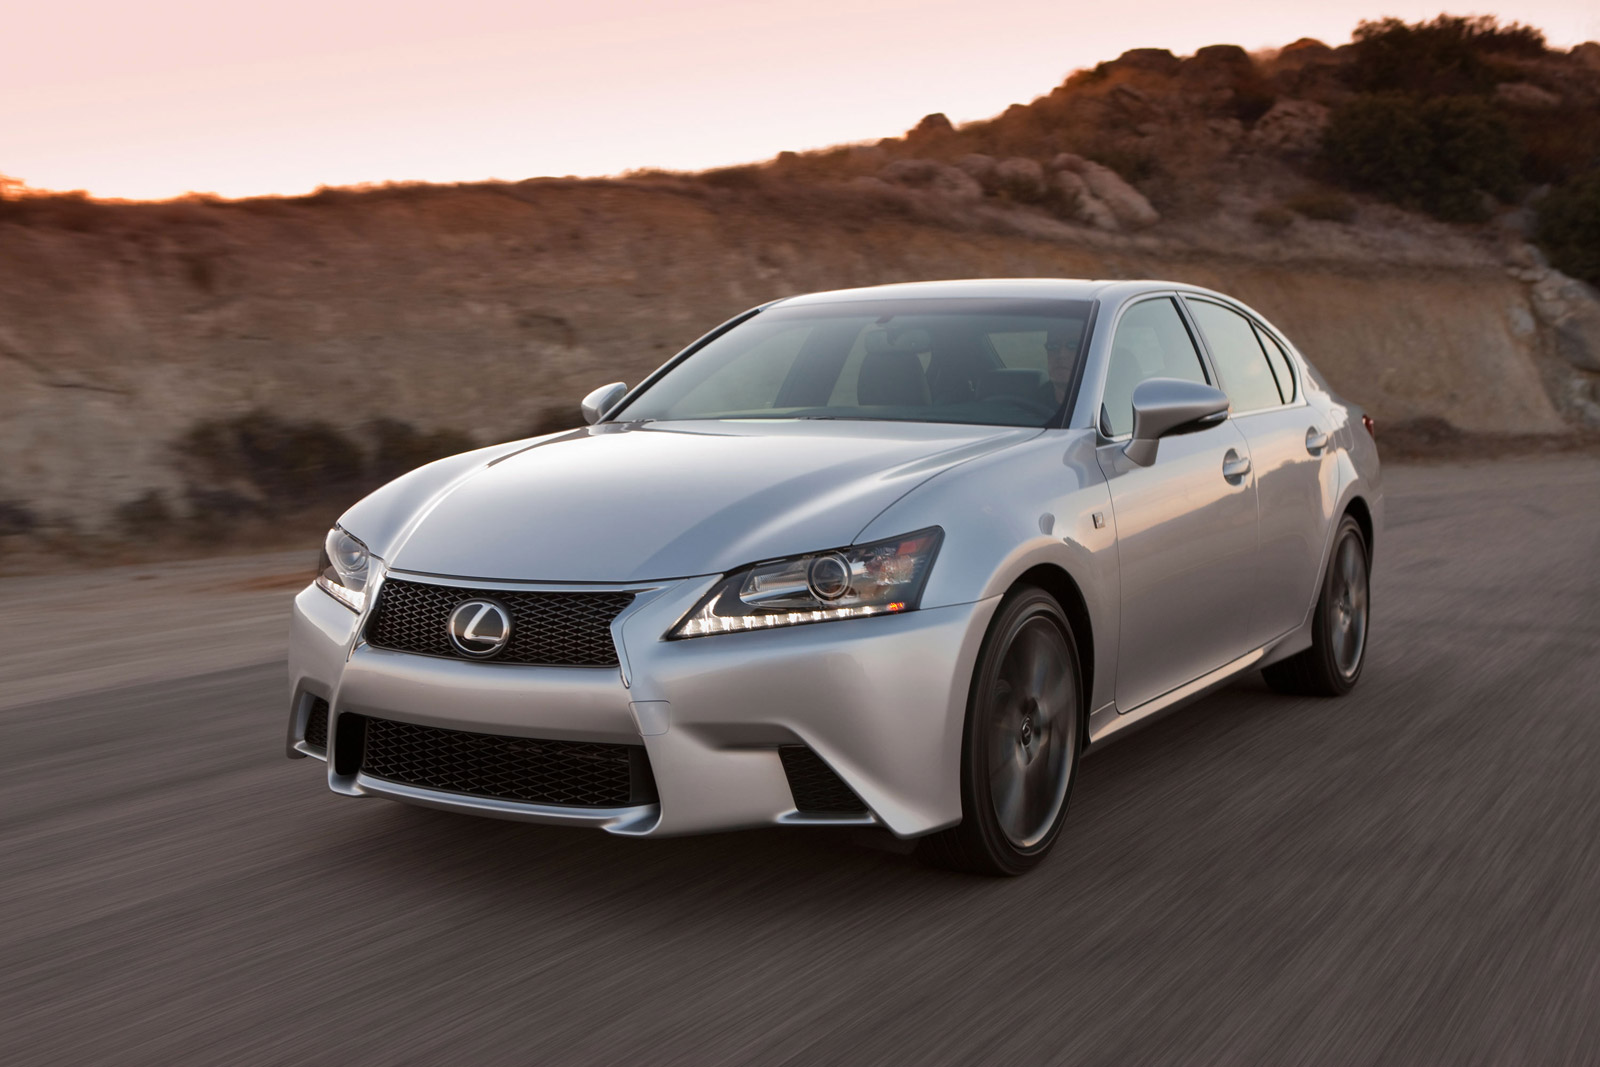 2014 Lexus Gs 350 Review Ratings Specs Prices And